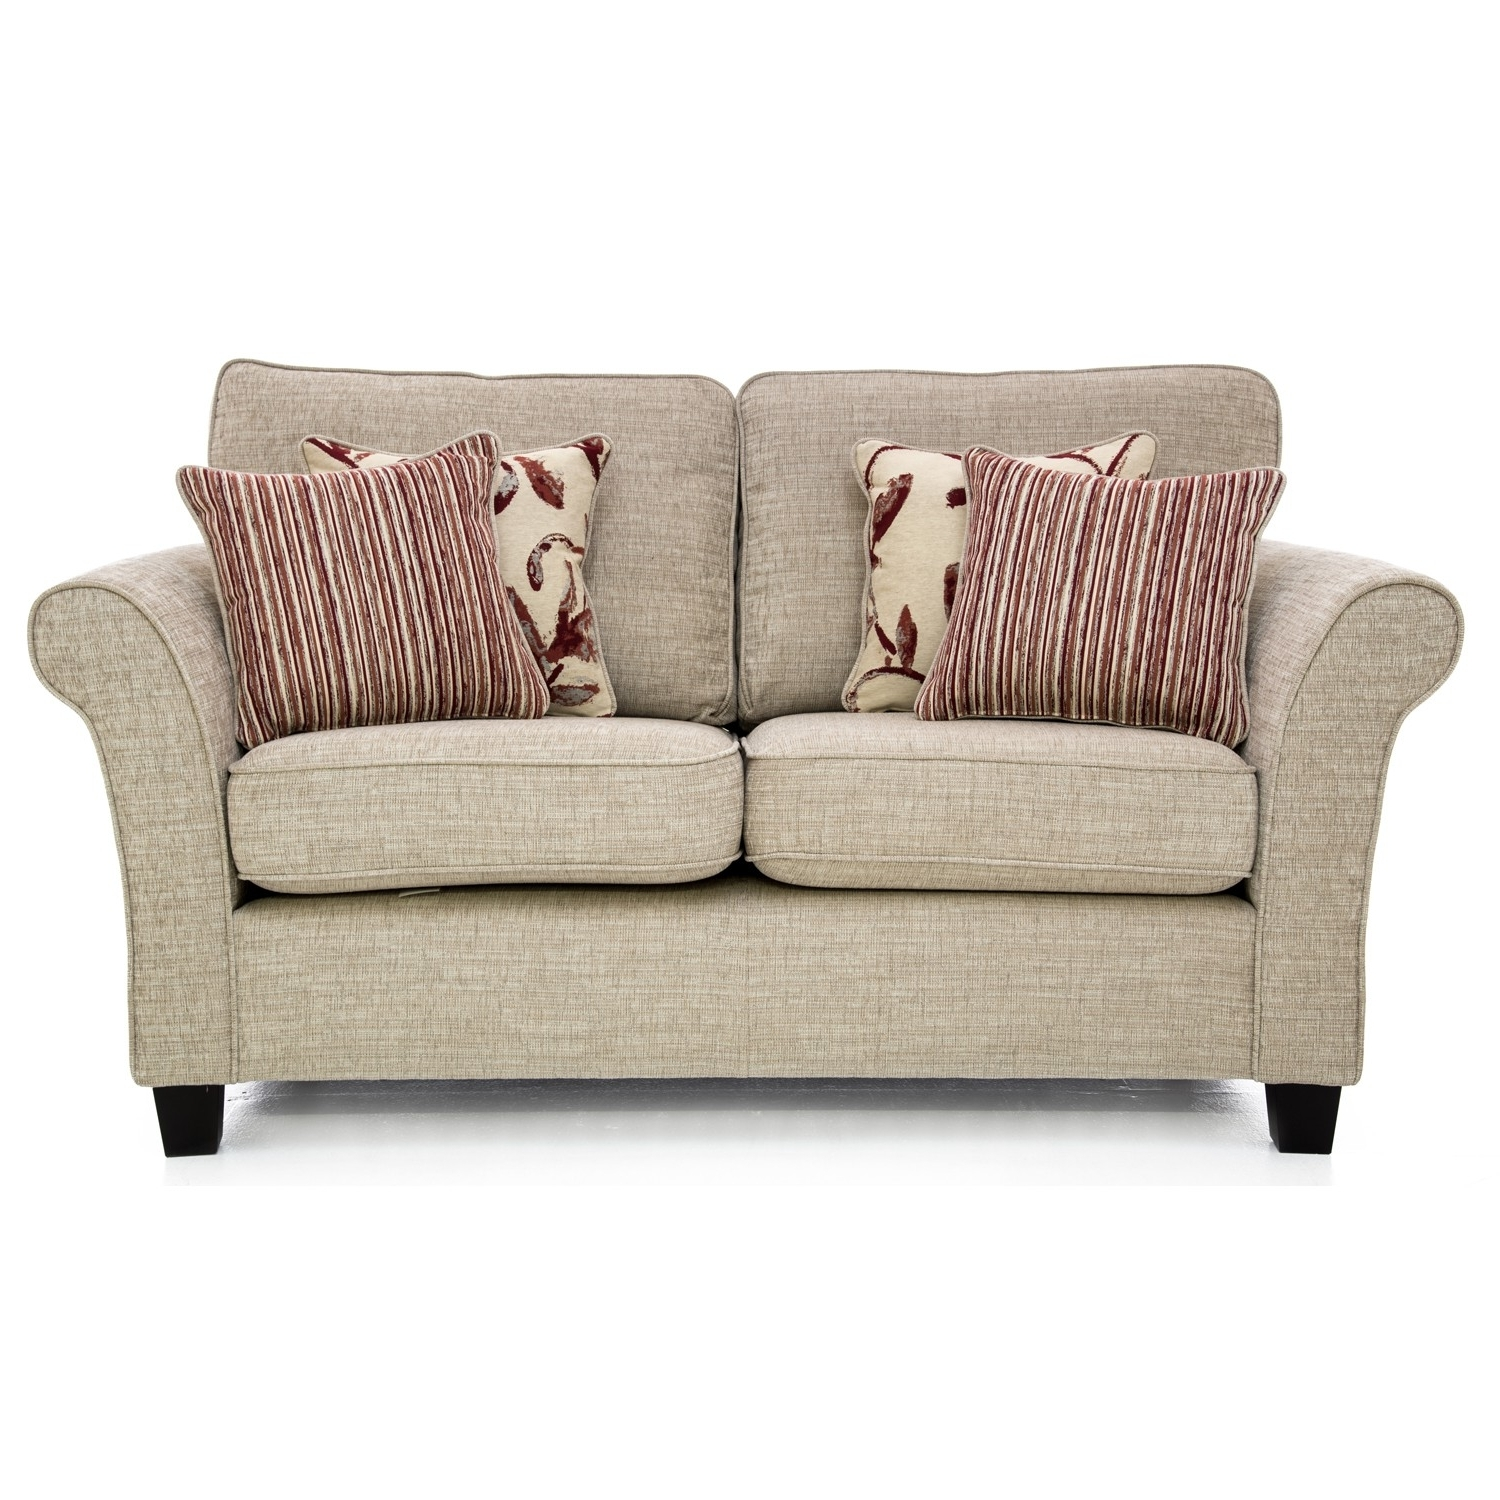 Small 2 Seater Sofas In Best And Newest Fancy Small 2 Seater Sofa 50 Modern Sofa Inspiration With Small (View 2 of 15)